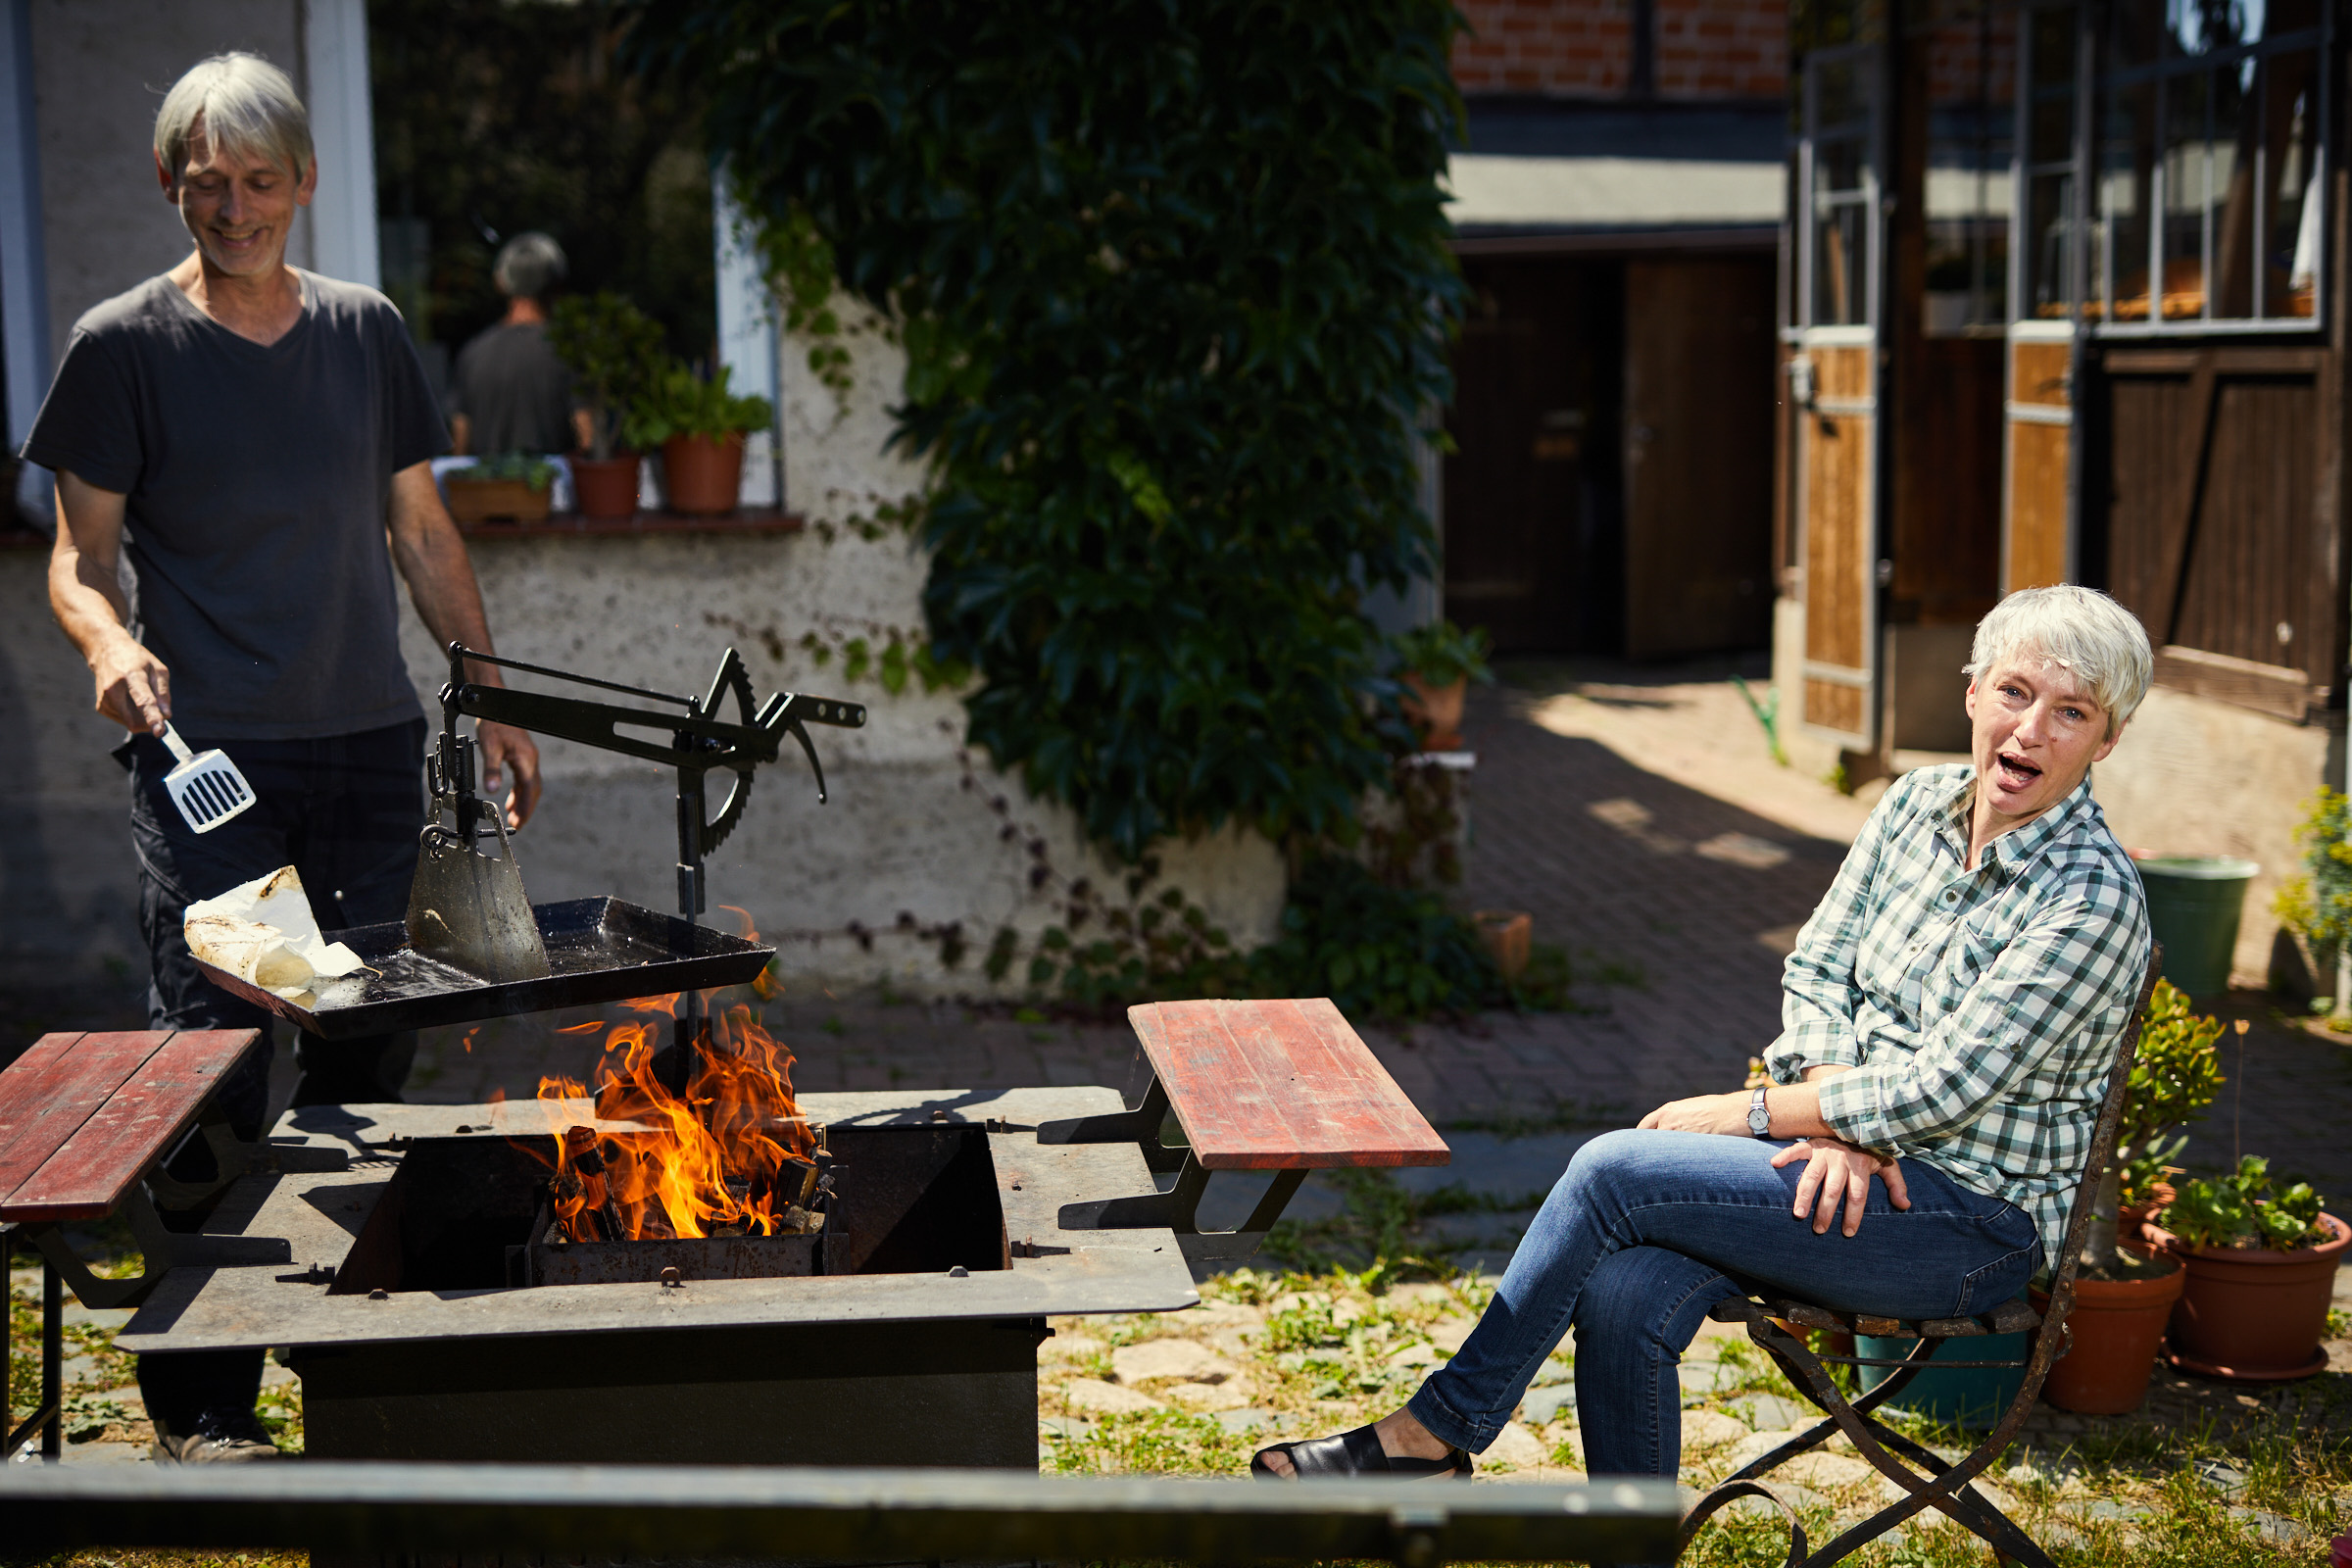 Barbecue with Sabine and Felix by Nikolaus Brade.